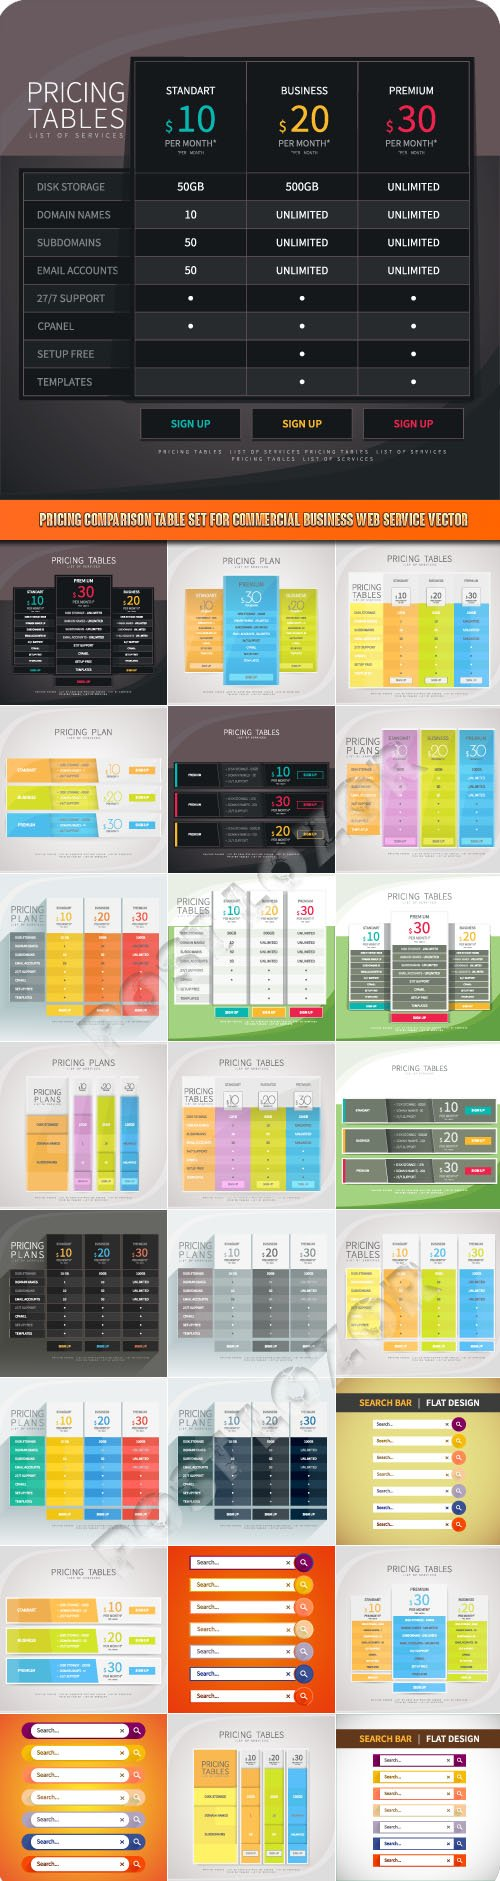 Pricing comparison table set for commercial business web service vector